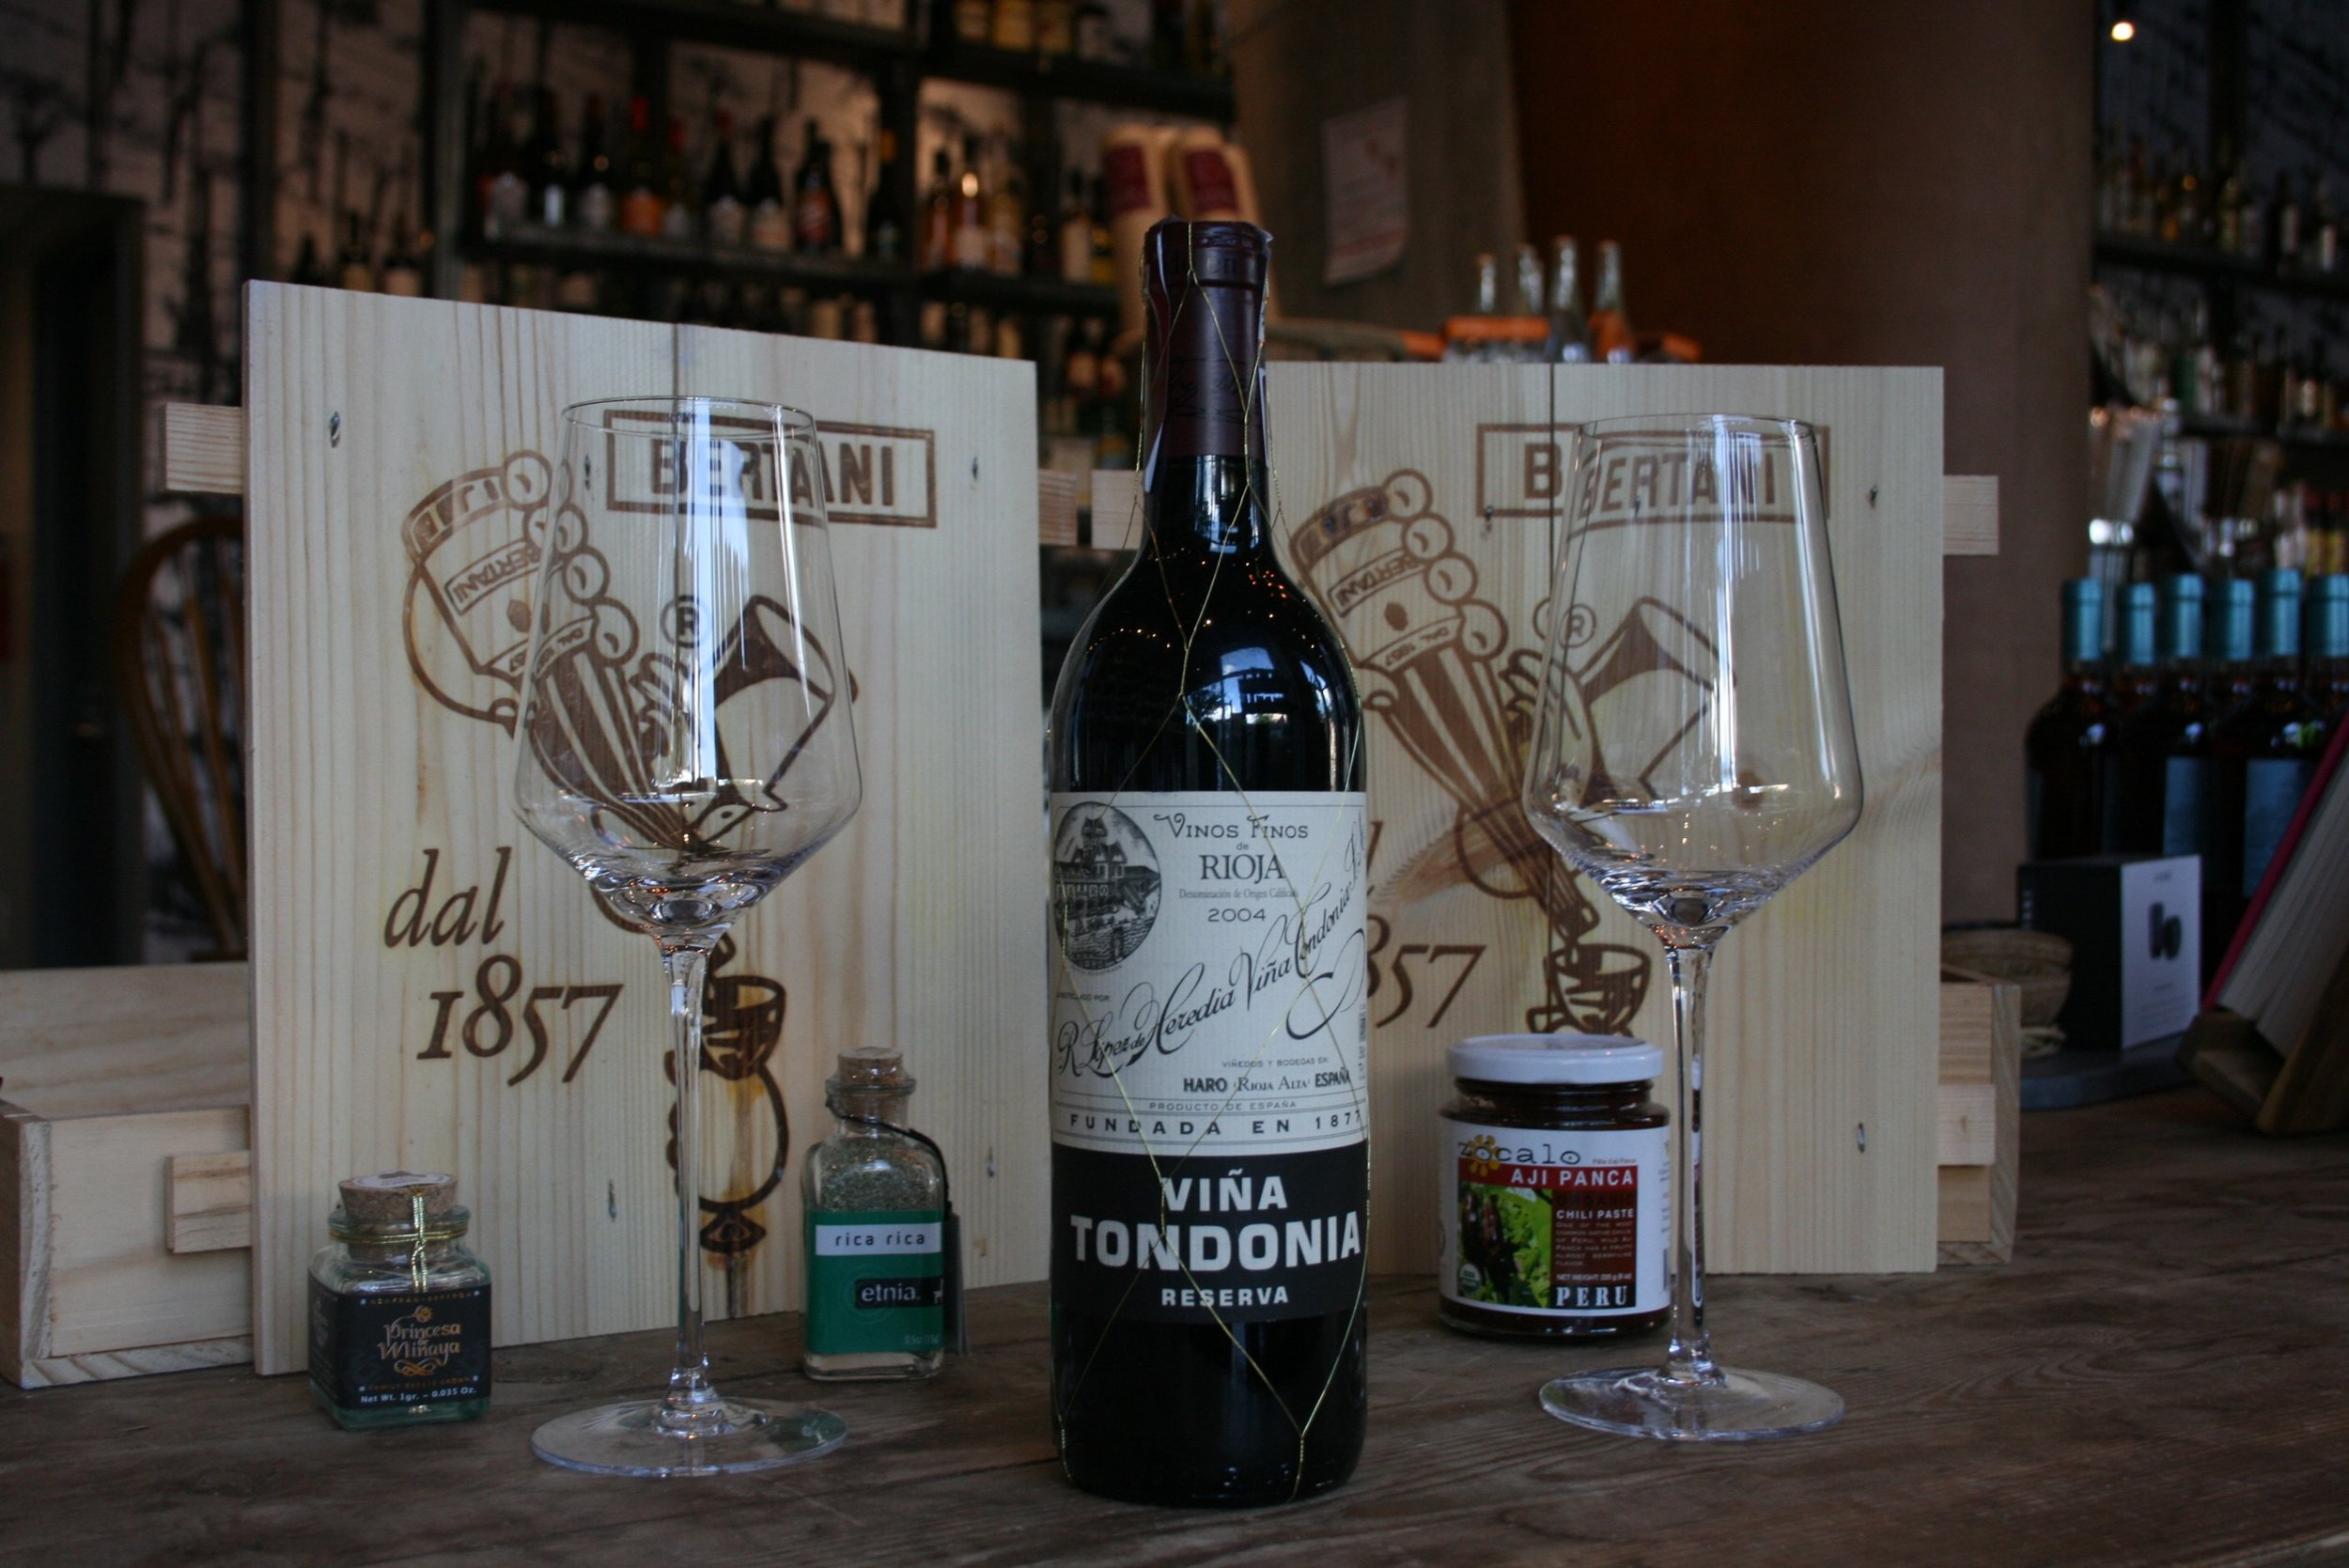 Viña Tondonia Rioja - 2004 - Likely to have sediment, and not so old as to be fragile, so decanting is preferred. This same wine in 15 years, you would want to research whether to decant as you may loose the bouquet by doing so, or throw off the wine's delicate structure.